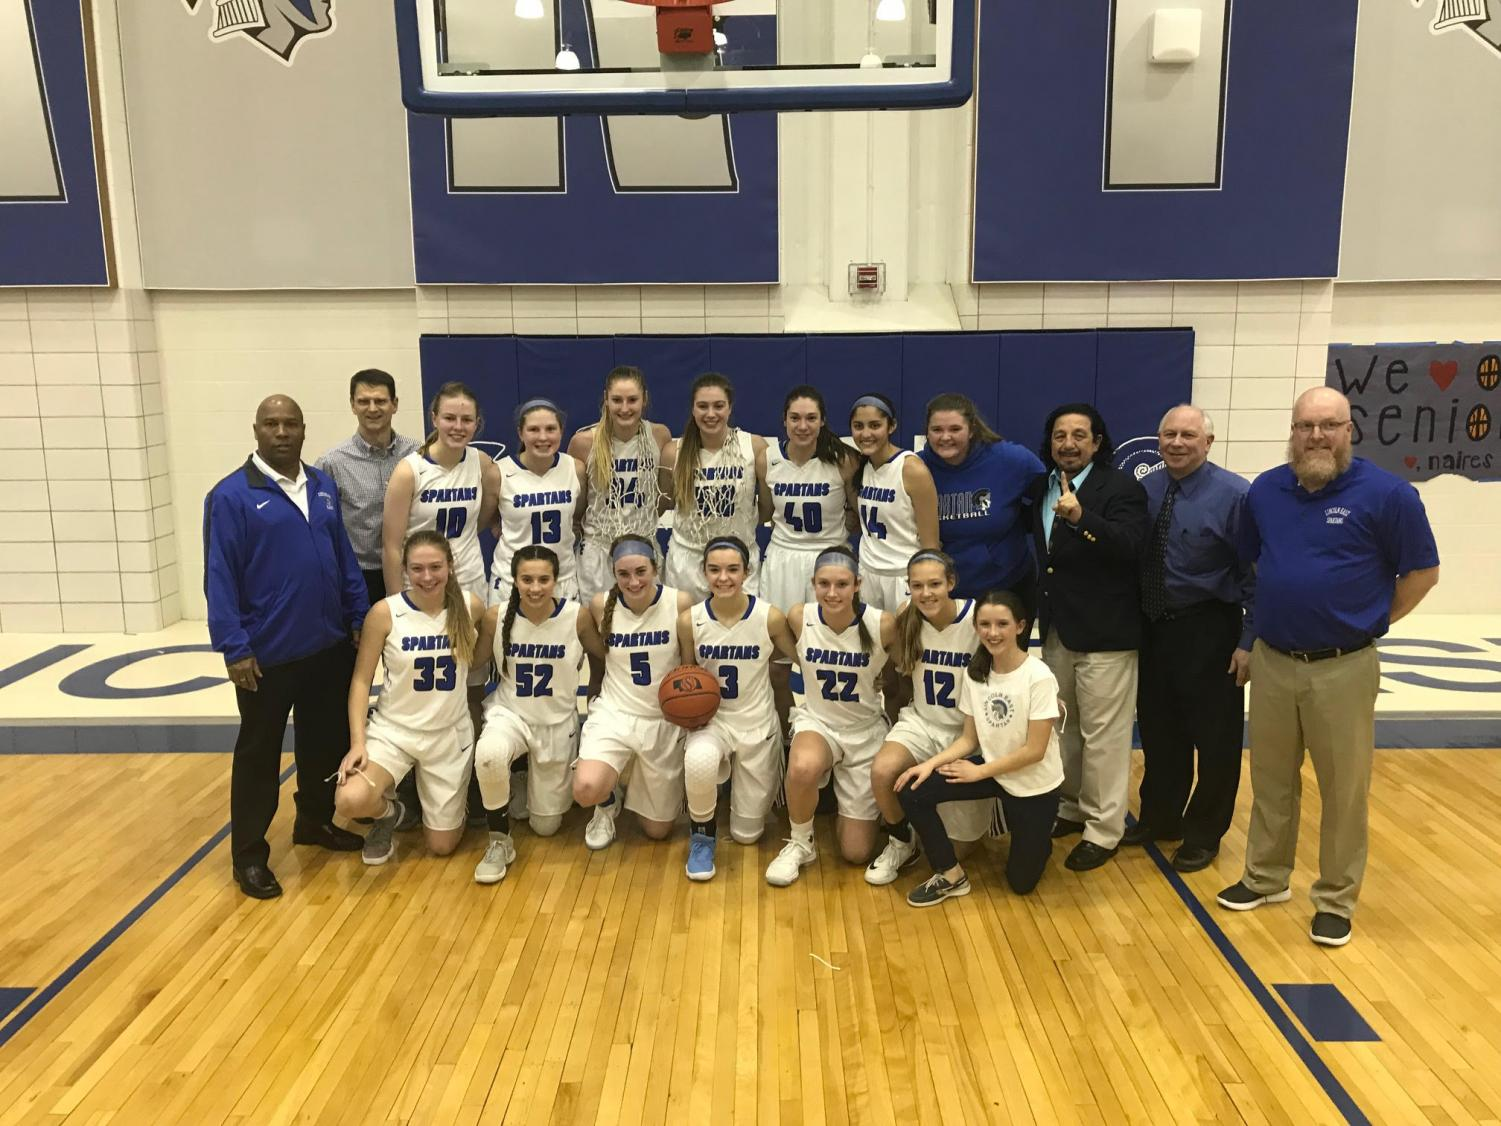 The varsity girls basketball team posses for a picture after winning the A-4 district.